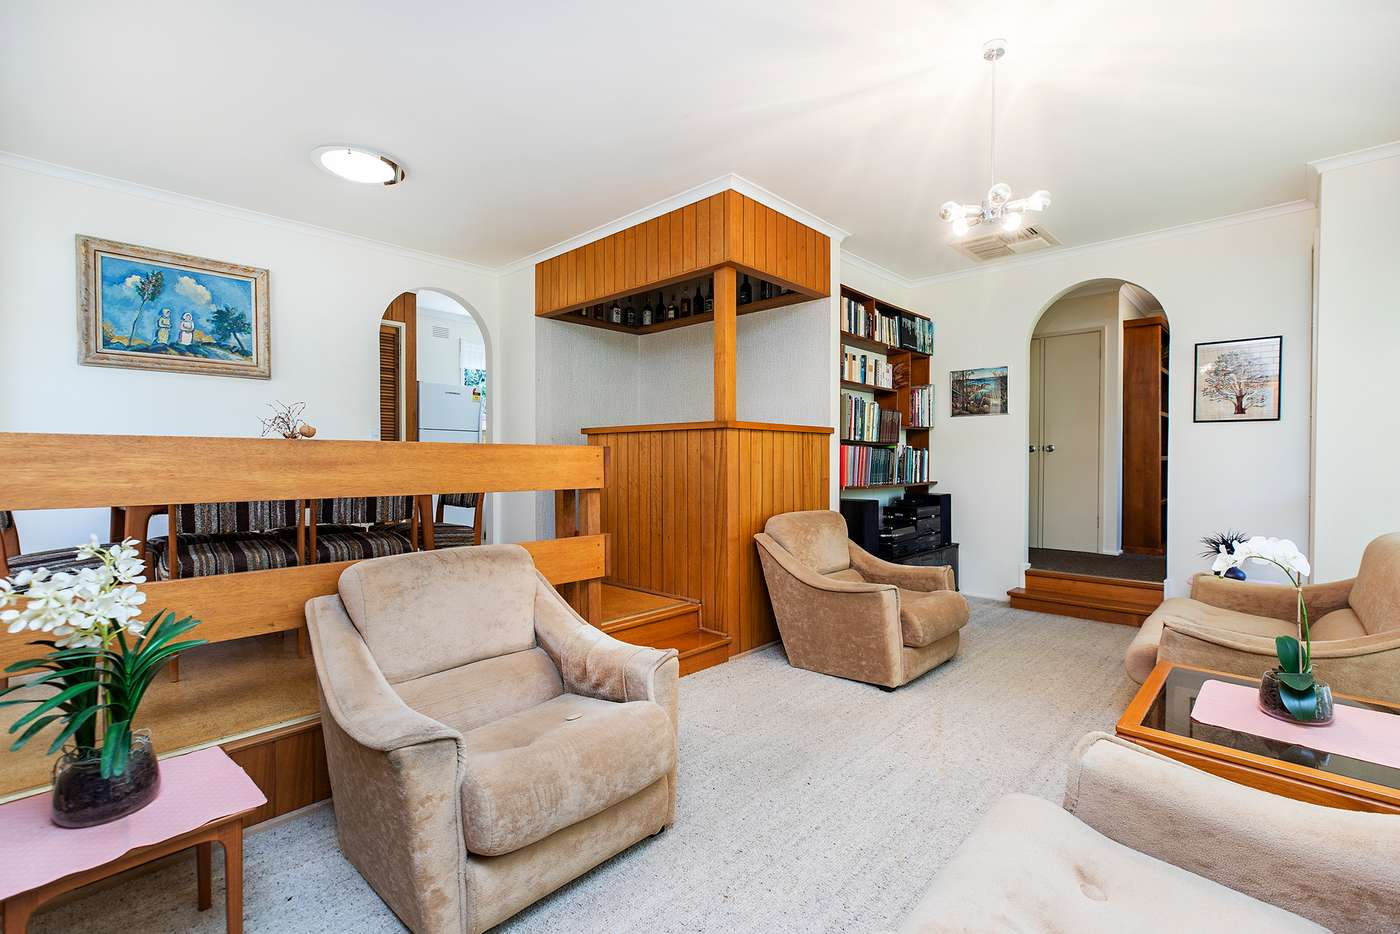 Sixth view of Homely house listing, 109 Eyre Street, Seaview Downs SA 5049